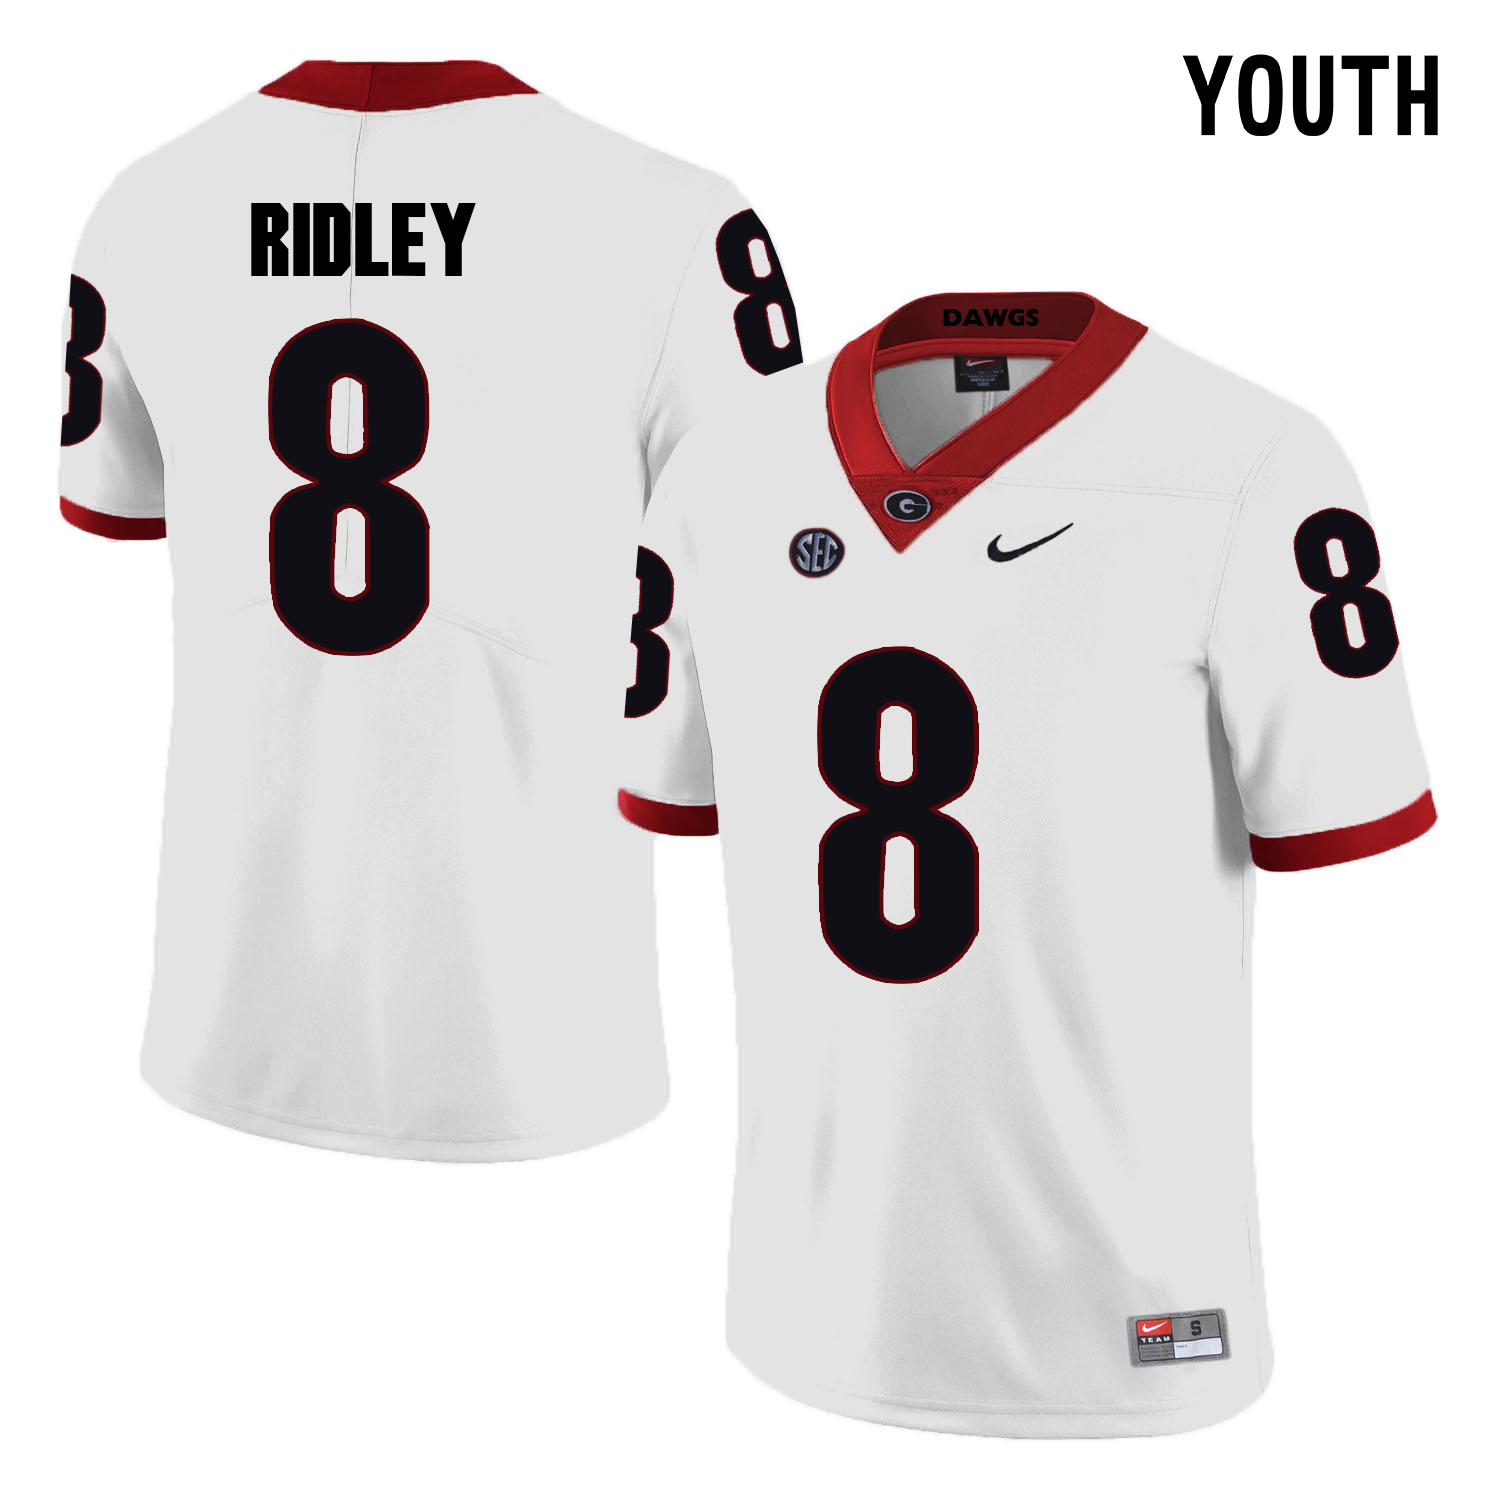 Georgia Bulldogs 8 Riley Ridley White Youth College Football Jersey